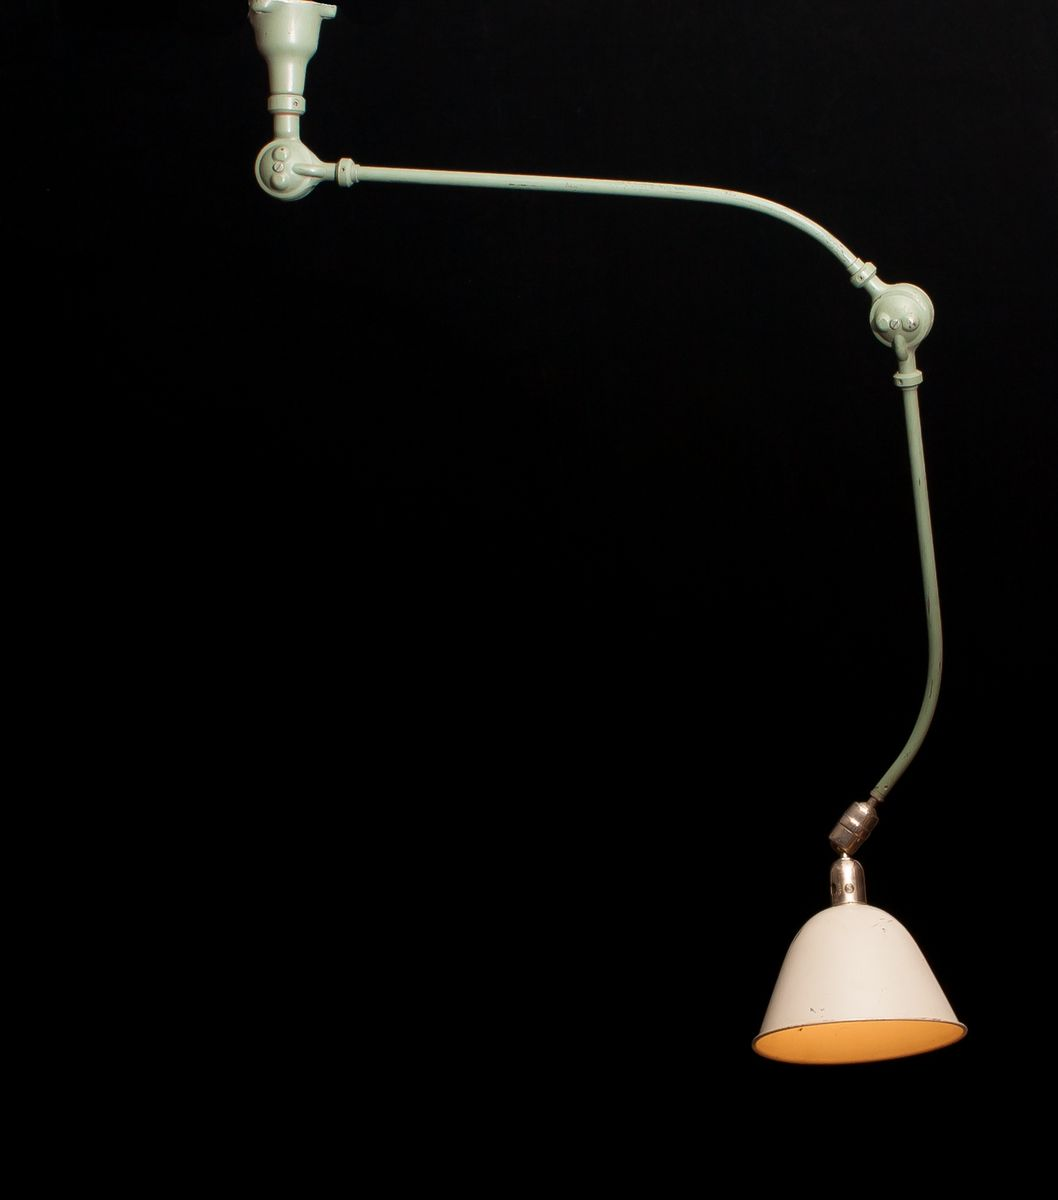 Industrial Triplex Lamp by Johan Petter Johansson, 1960s for sale at ...